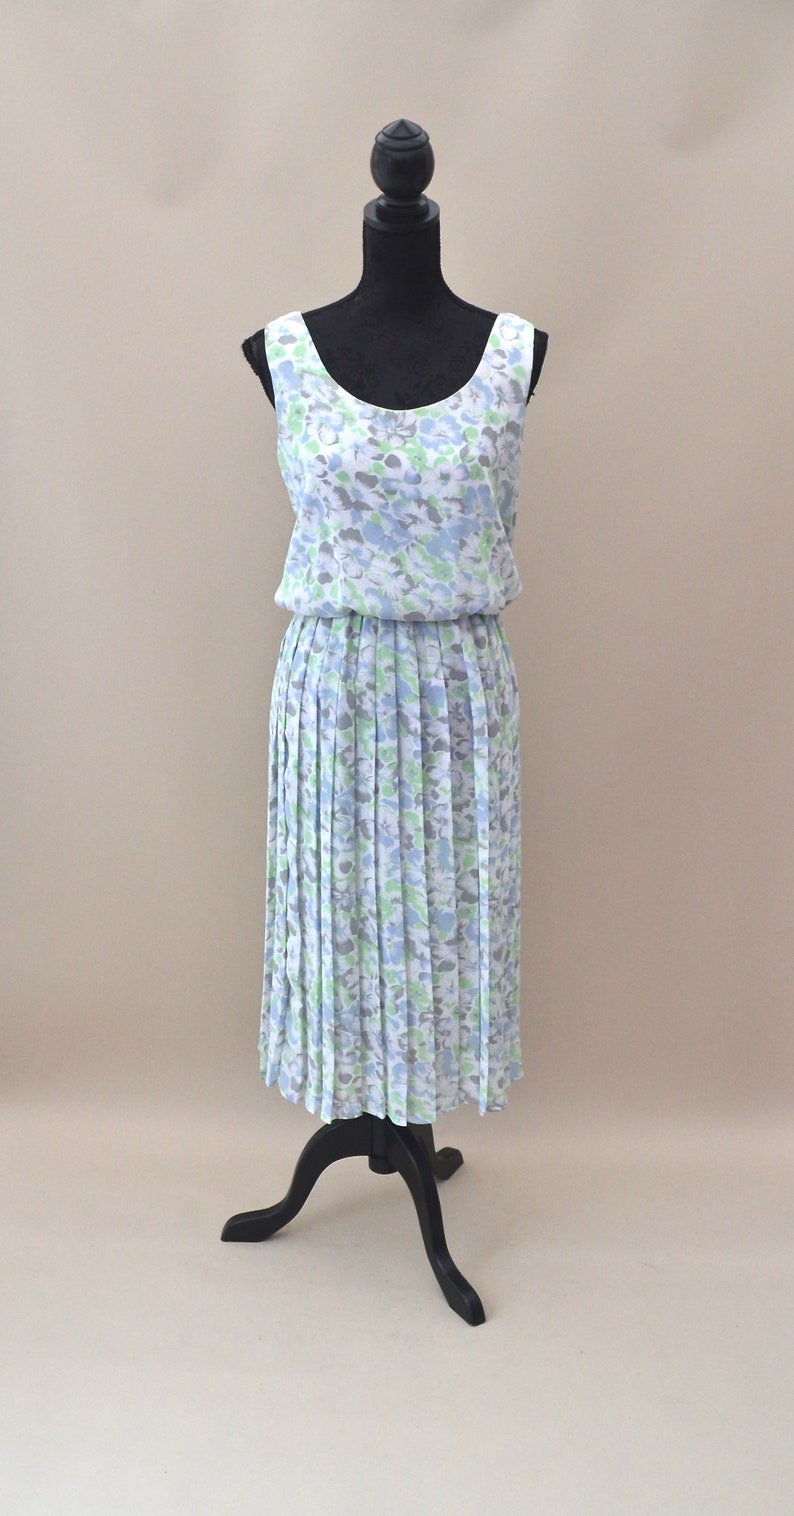 ca43f9e4a5 1980s summer dress with pleated skirt and elasticated waist   Etsy